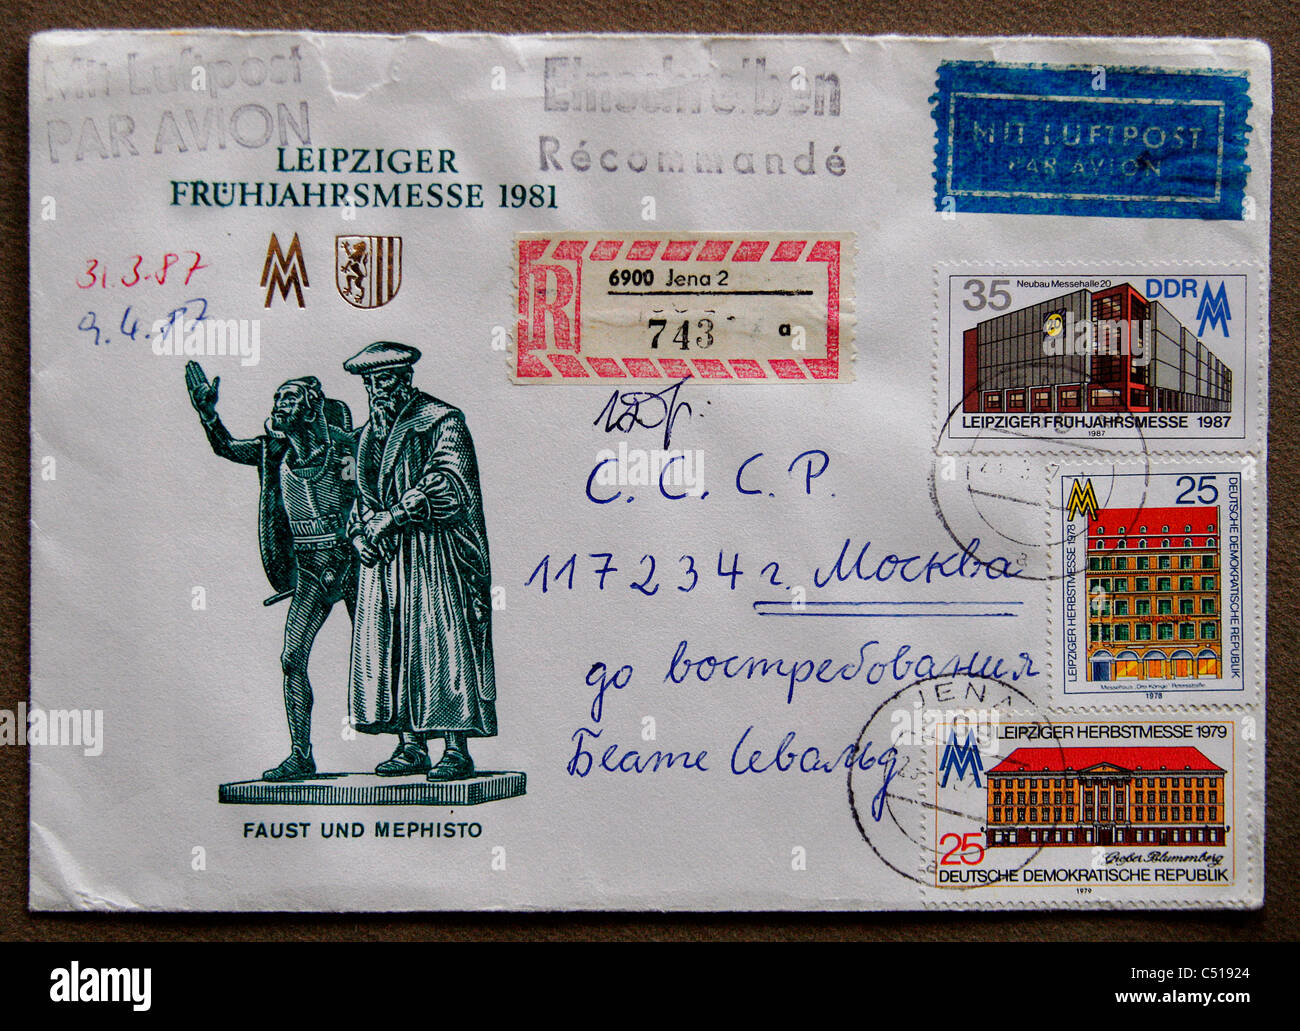 A first day cover / letter from the former GDR representing the fear in the spring 1981 in Leipzig. - Stock Image